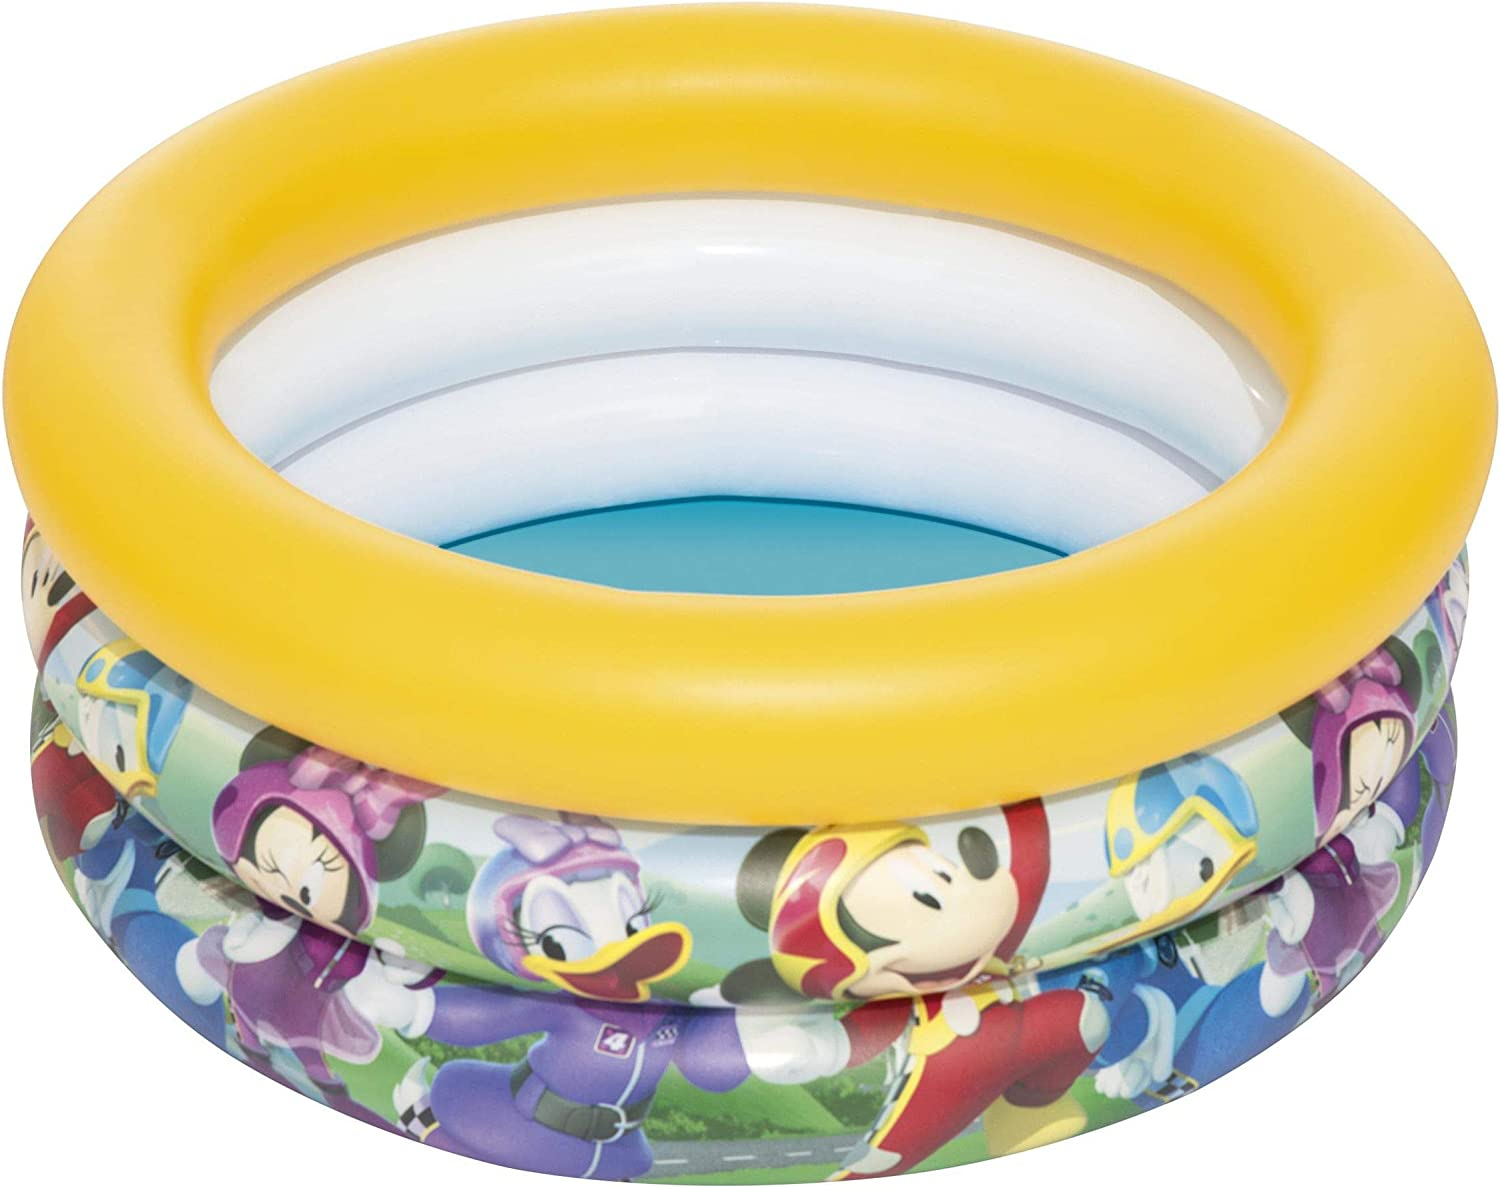 Piscina Hinchable Infantil Bestway Mickey and the Roadster Racers Baby: Amazon.es: Juguetes y juegos